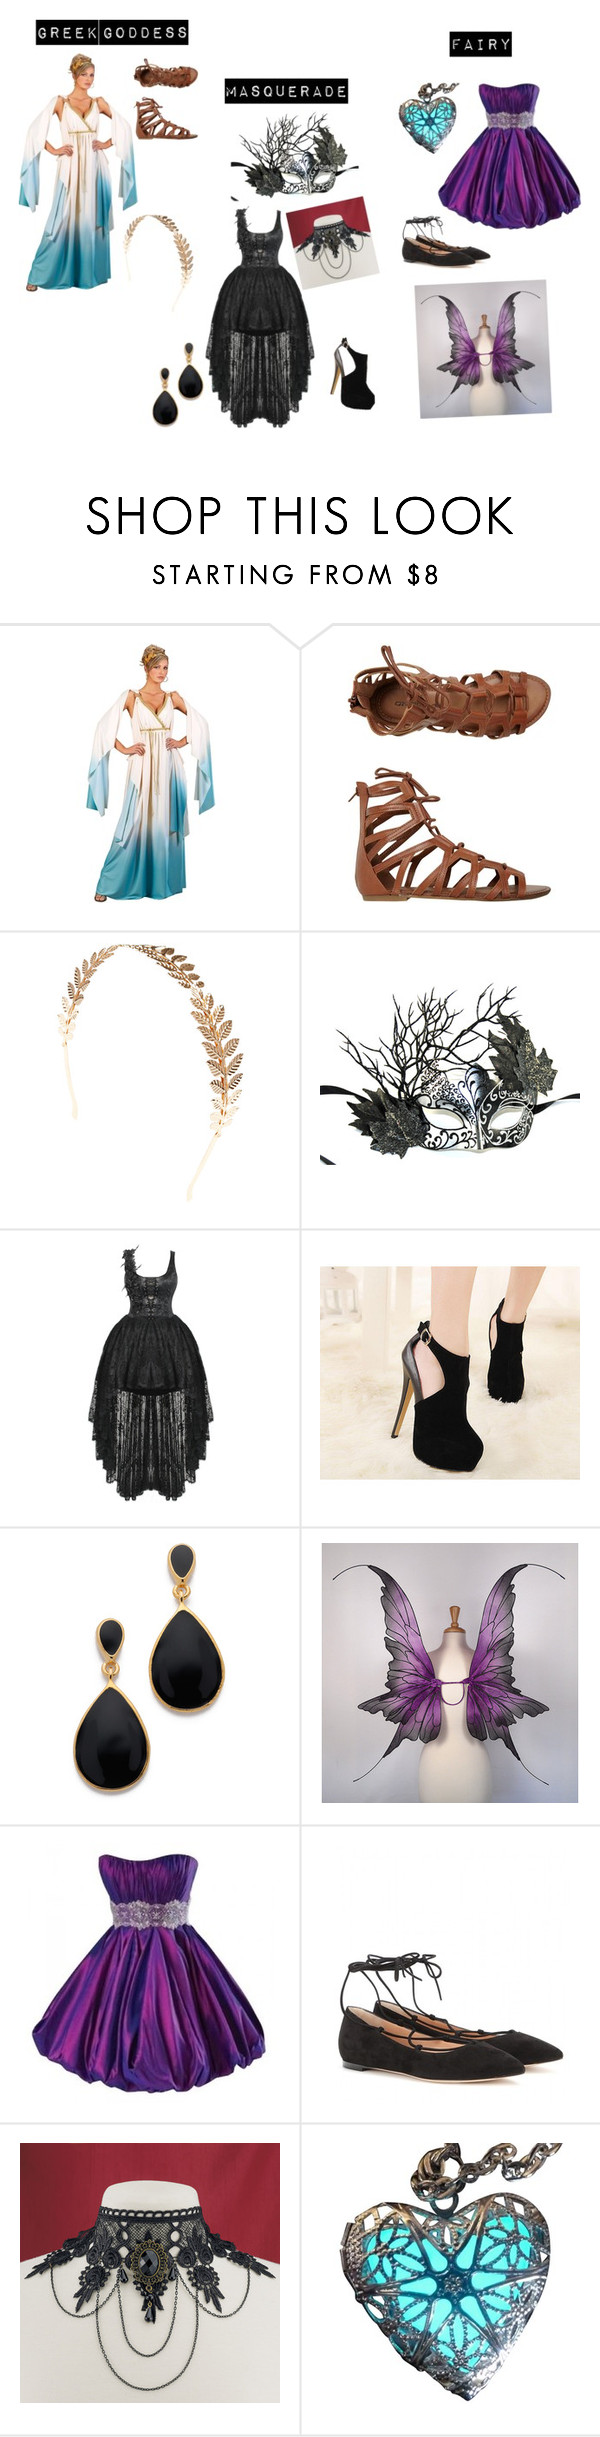 """Halloween #2"" by queen26yassy on Polyvore featuring O'Neill, Wet Seal, Masquerade, Kenneth Jay Lane, Maggie Sottero and Gianvito Rossi"